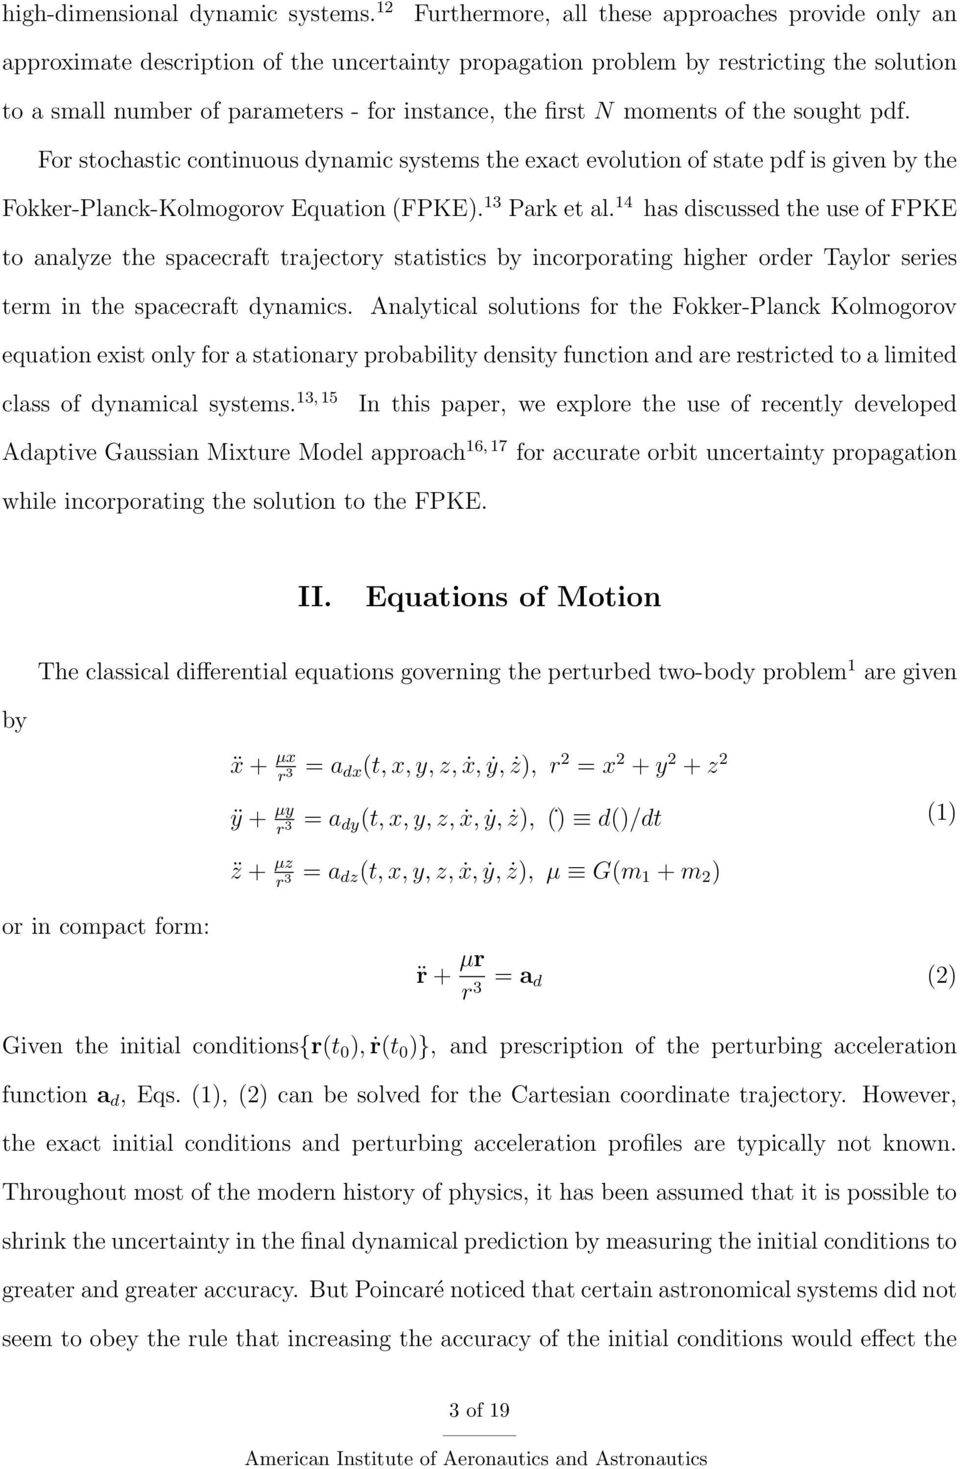 An Approach for Nonlinear Uncertainty Propagation